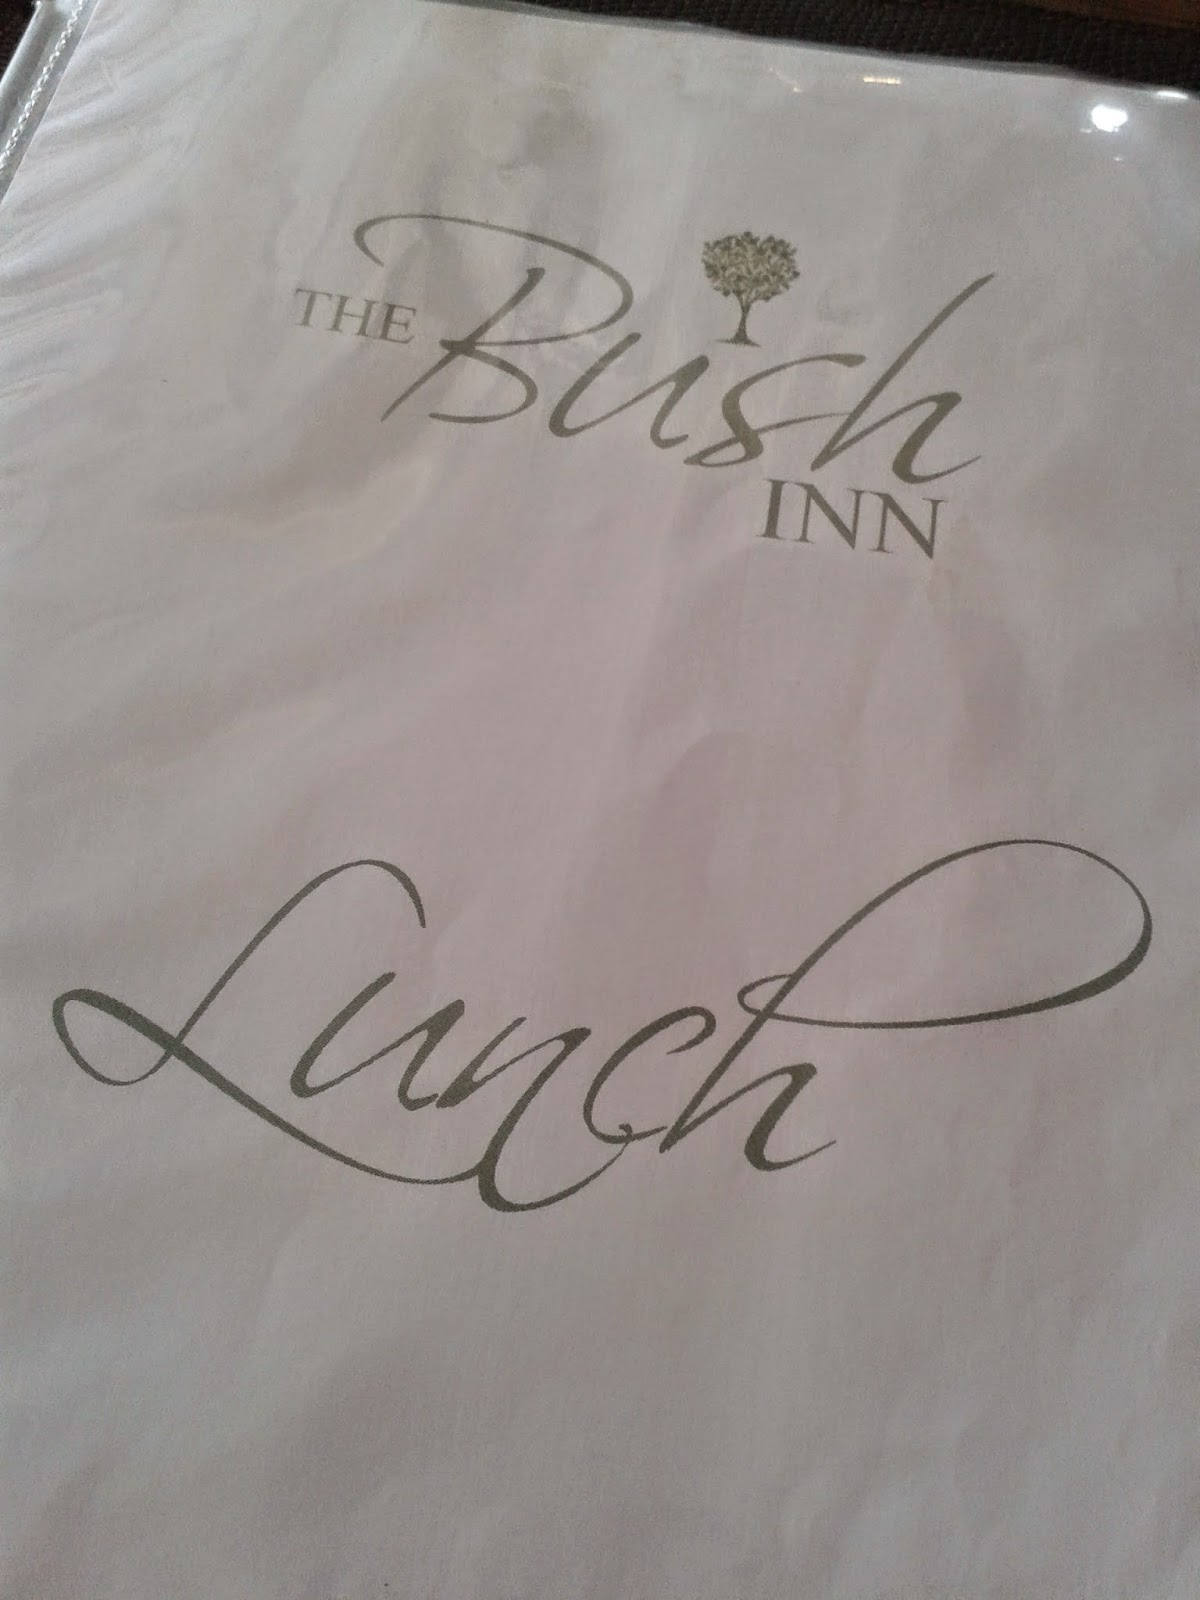 Bush Inn St. Hilary lunch menu